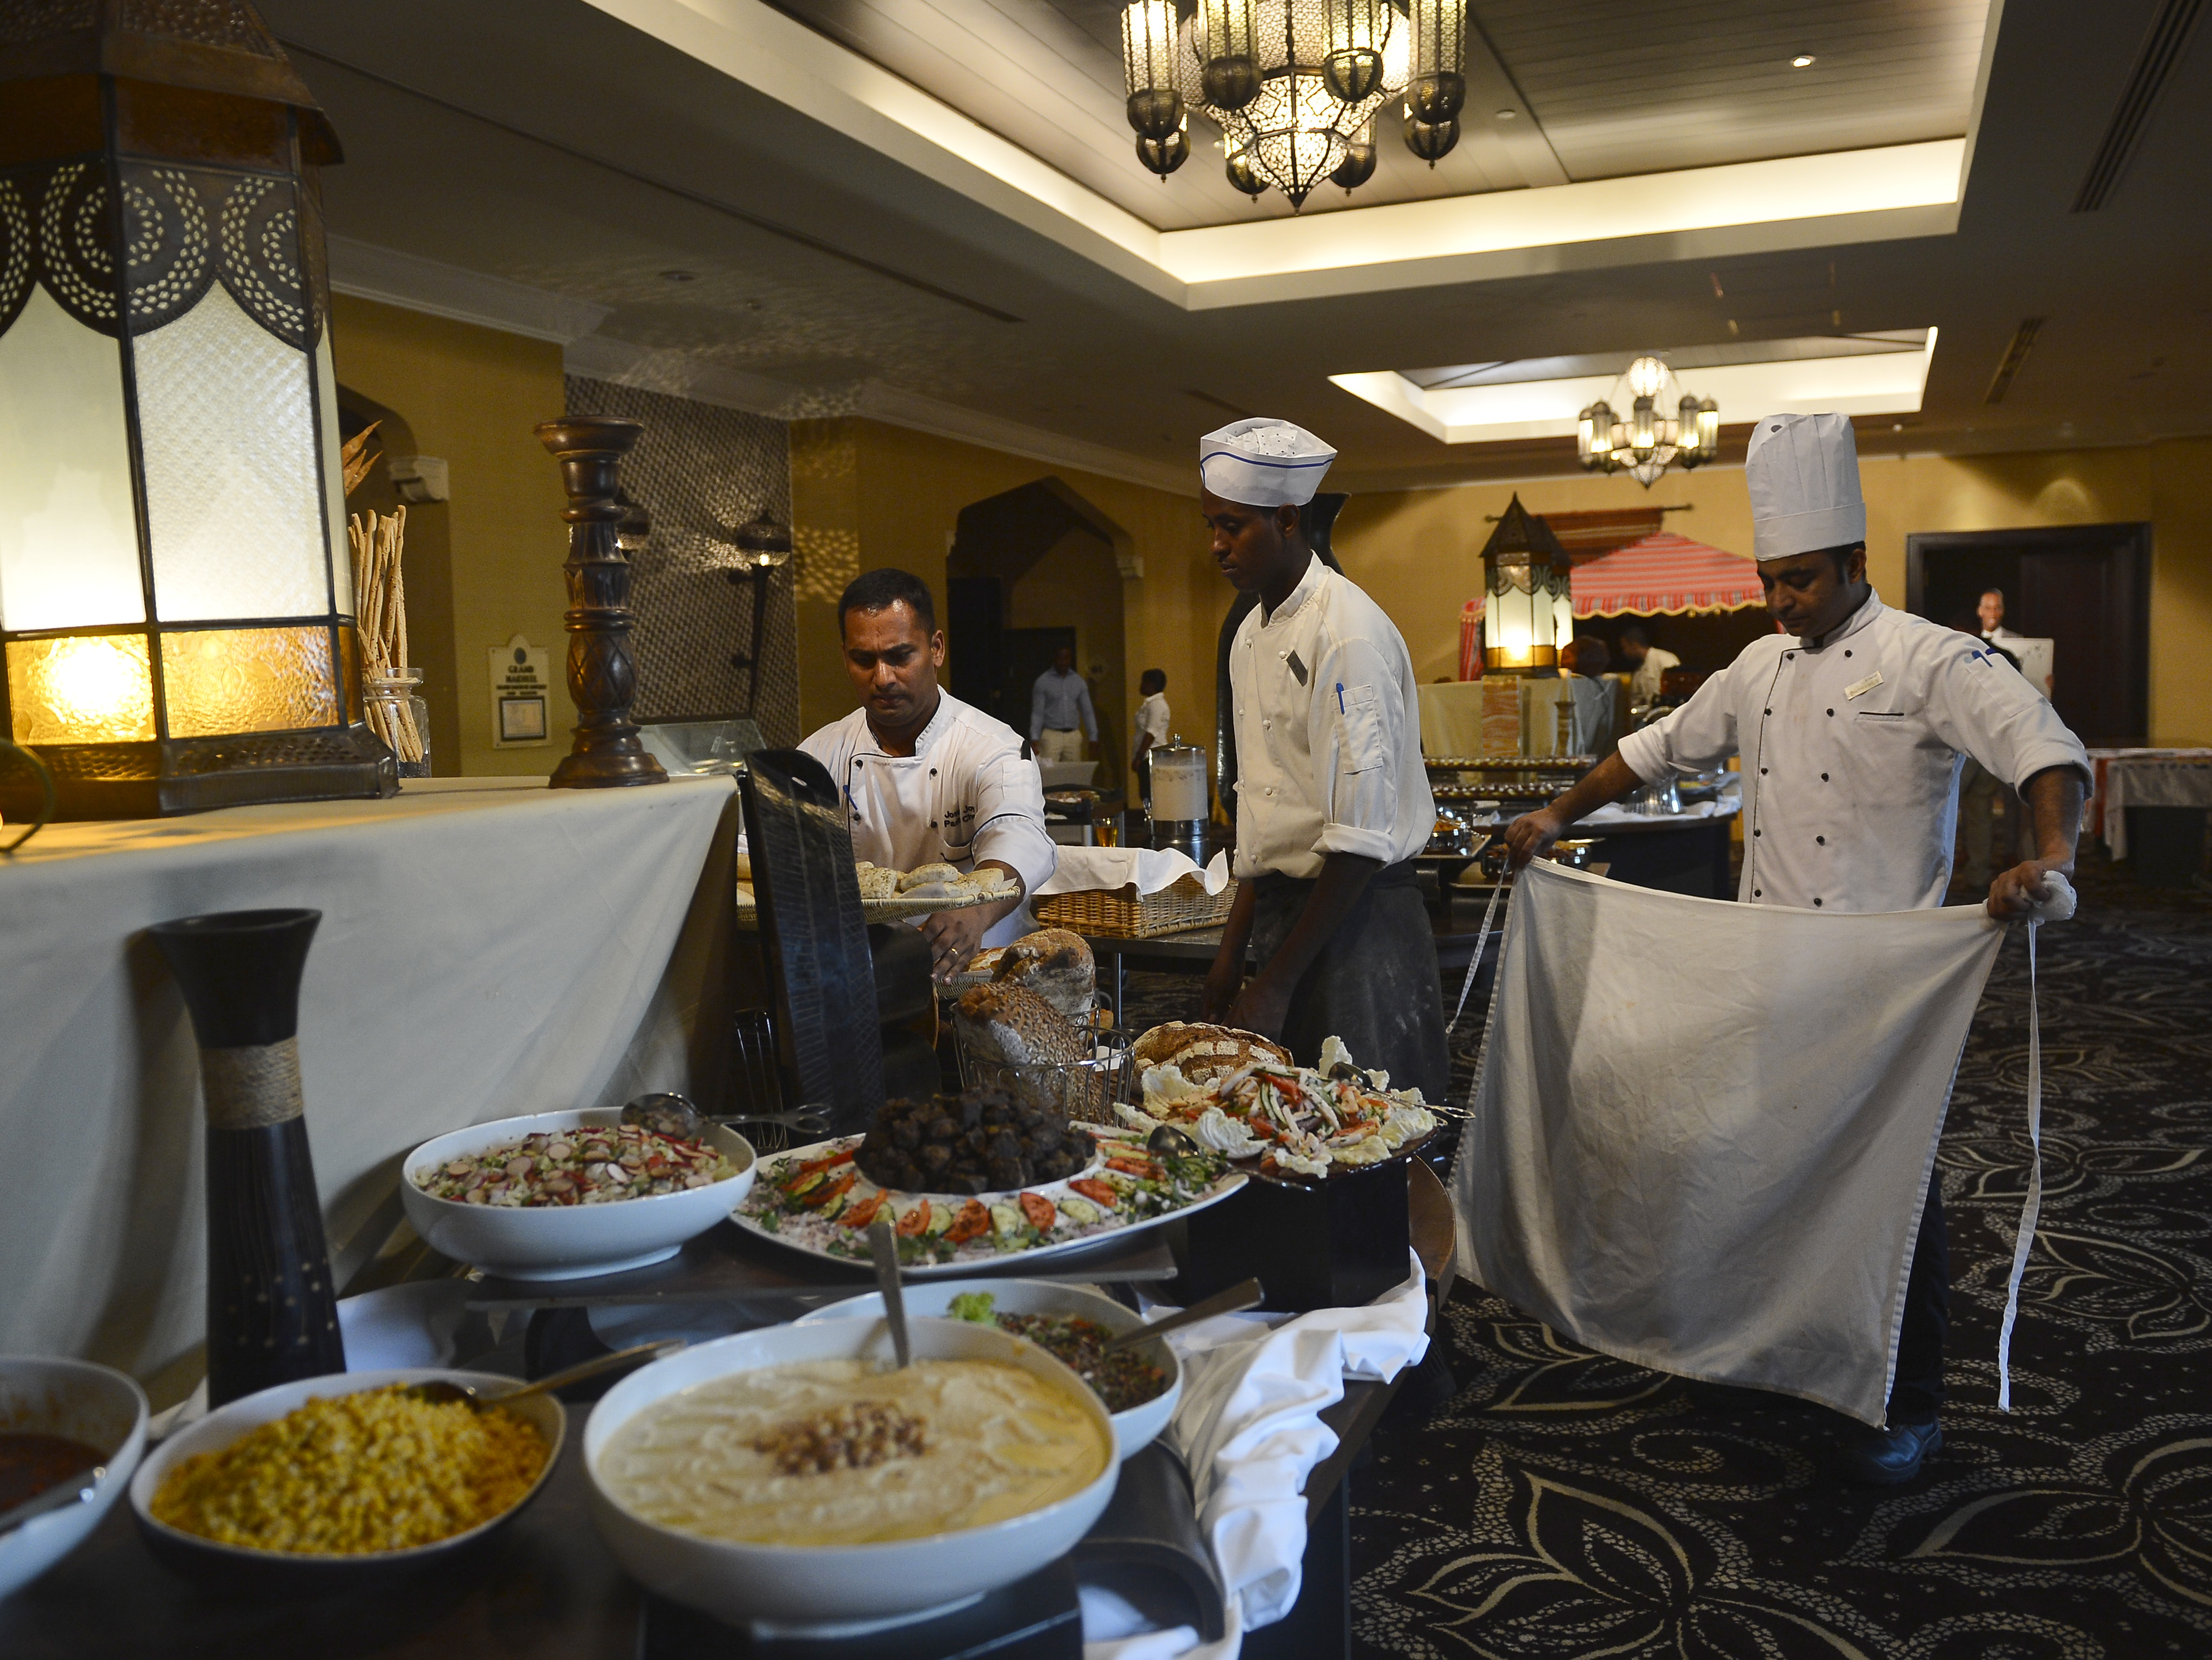 Kempinski Hotel caterers set up for Combined Joint Task Force-Horn of Africa's Iftar dinner in Djibouti, June 29, 2015. Iftar is the fast-breaking meal during the Muslim religious observance of Ramadan.  (U.S. Air Force photo by Senior Airman Nesha Humes)